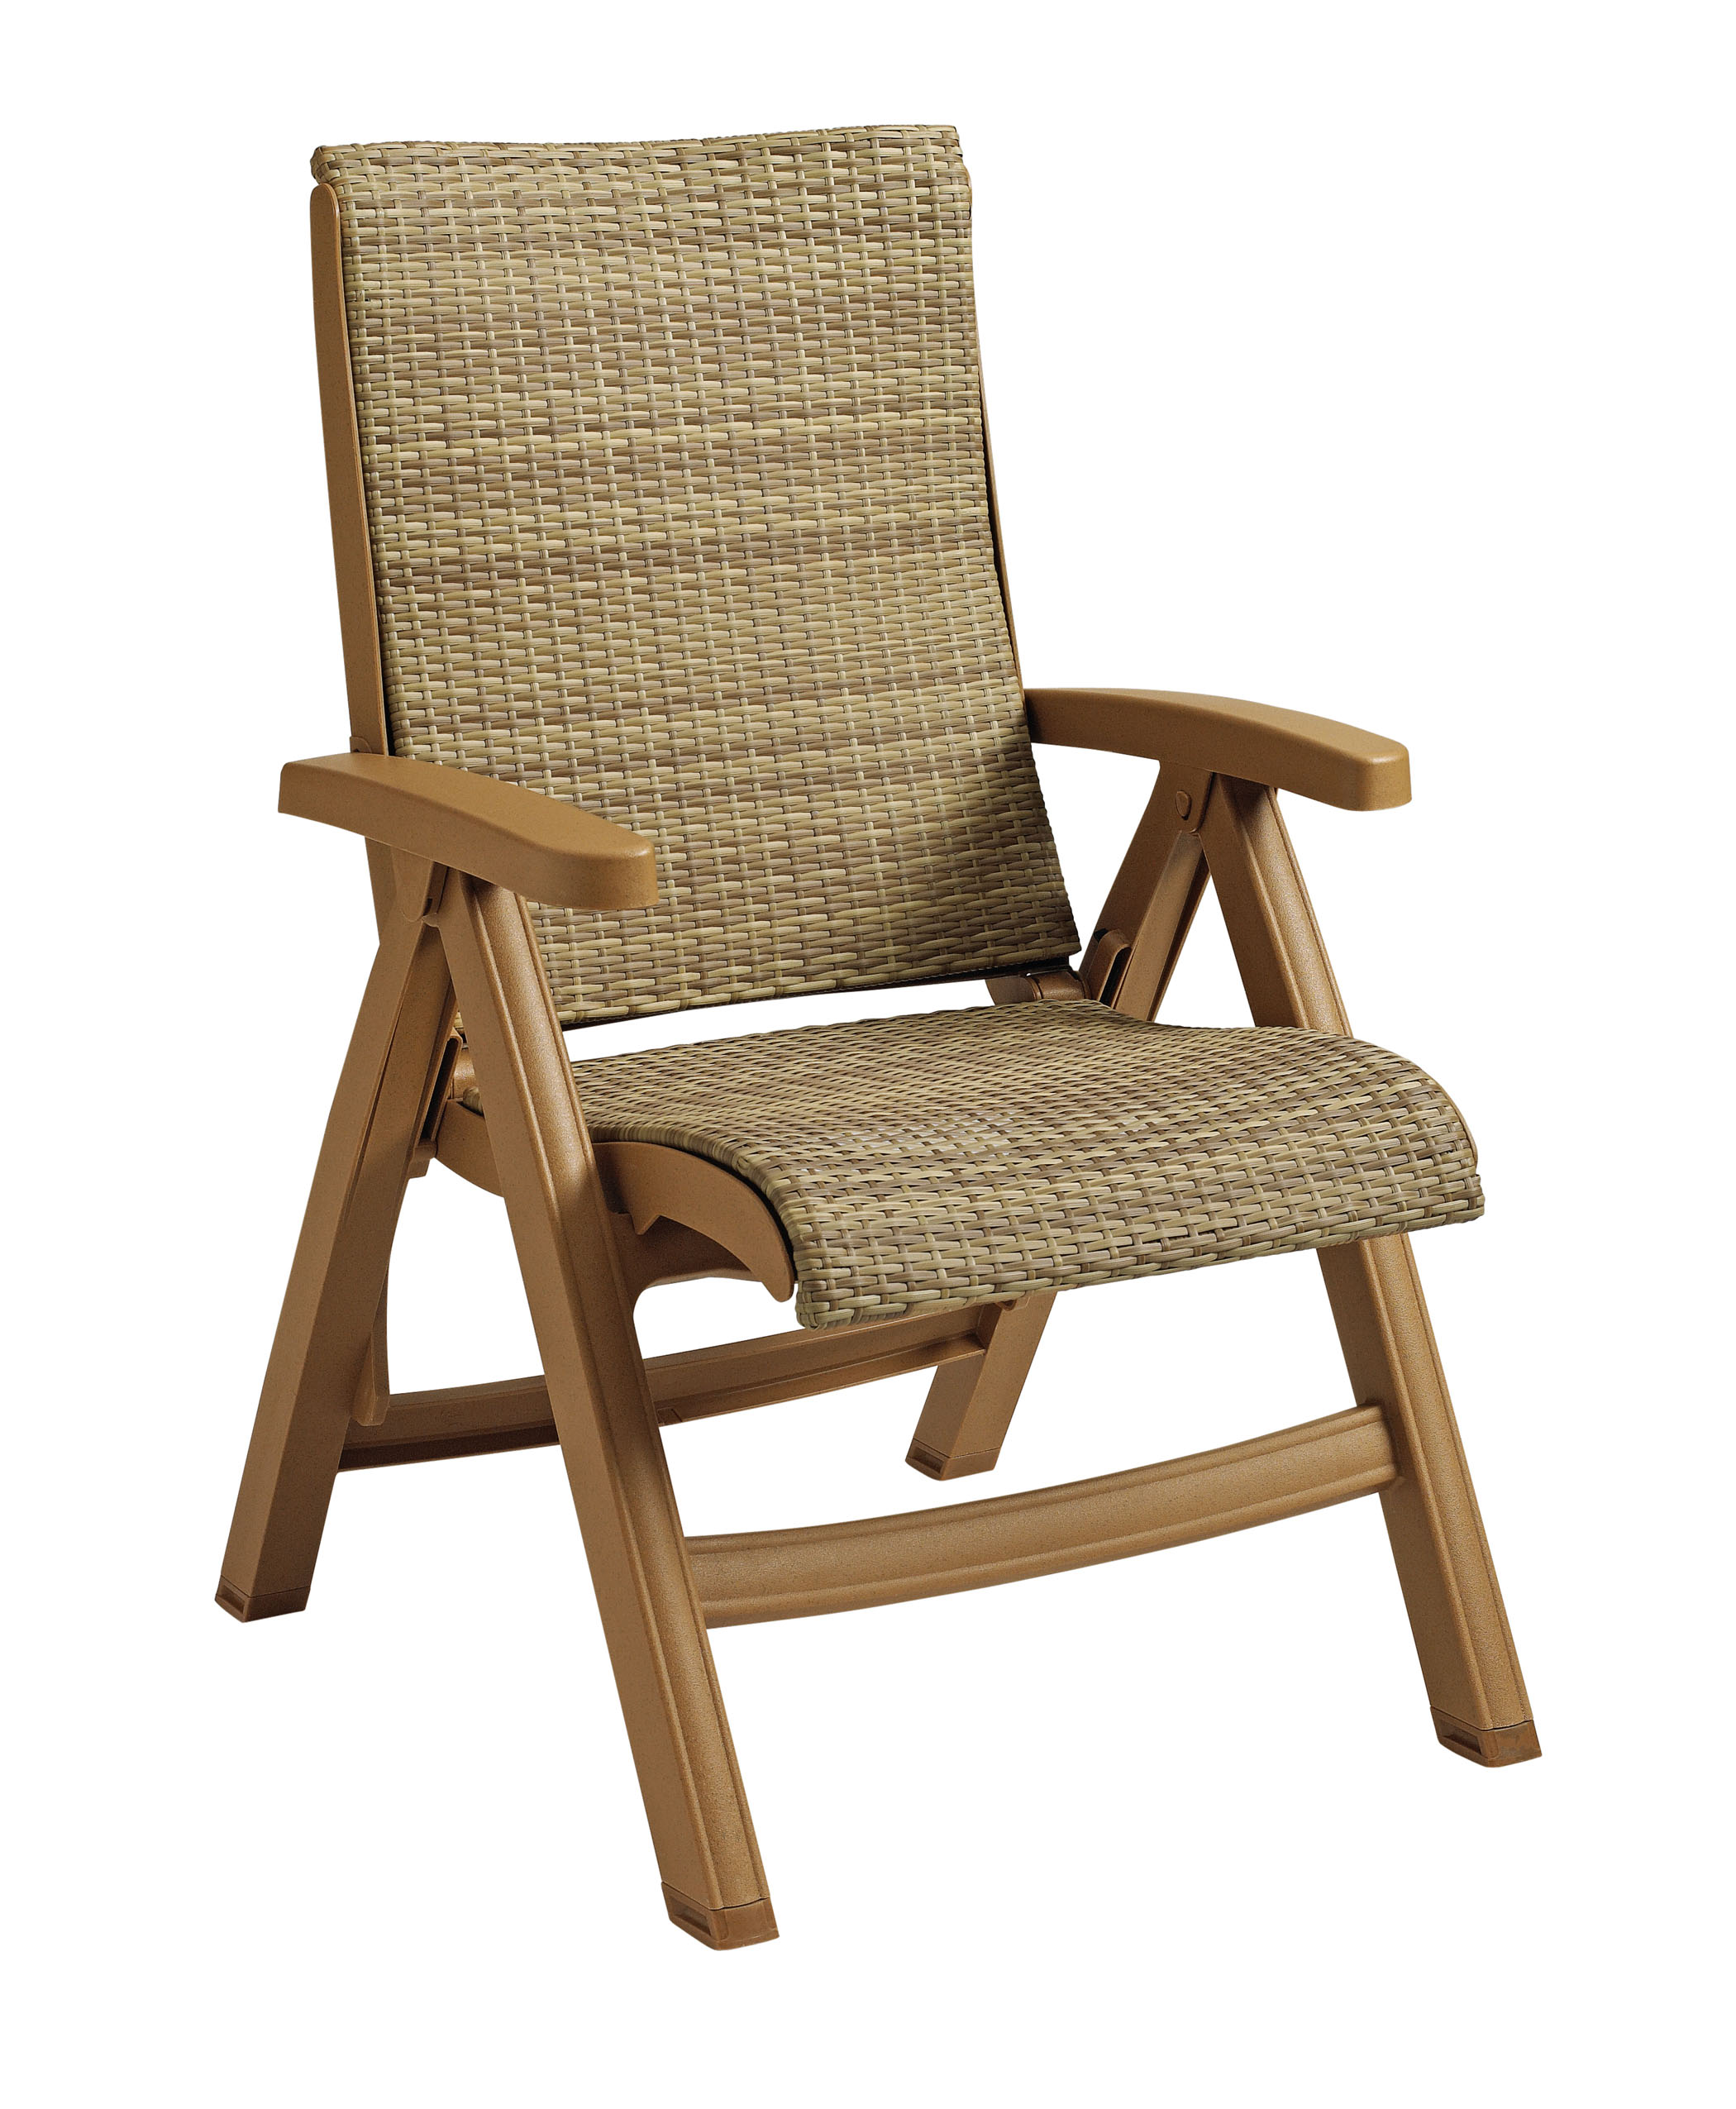 folding wicker chairs big joe lumin chair multiple colors java all weather resin et andt